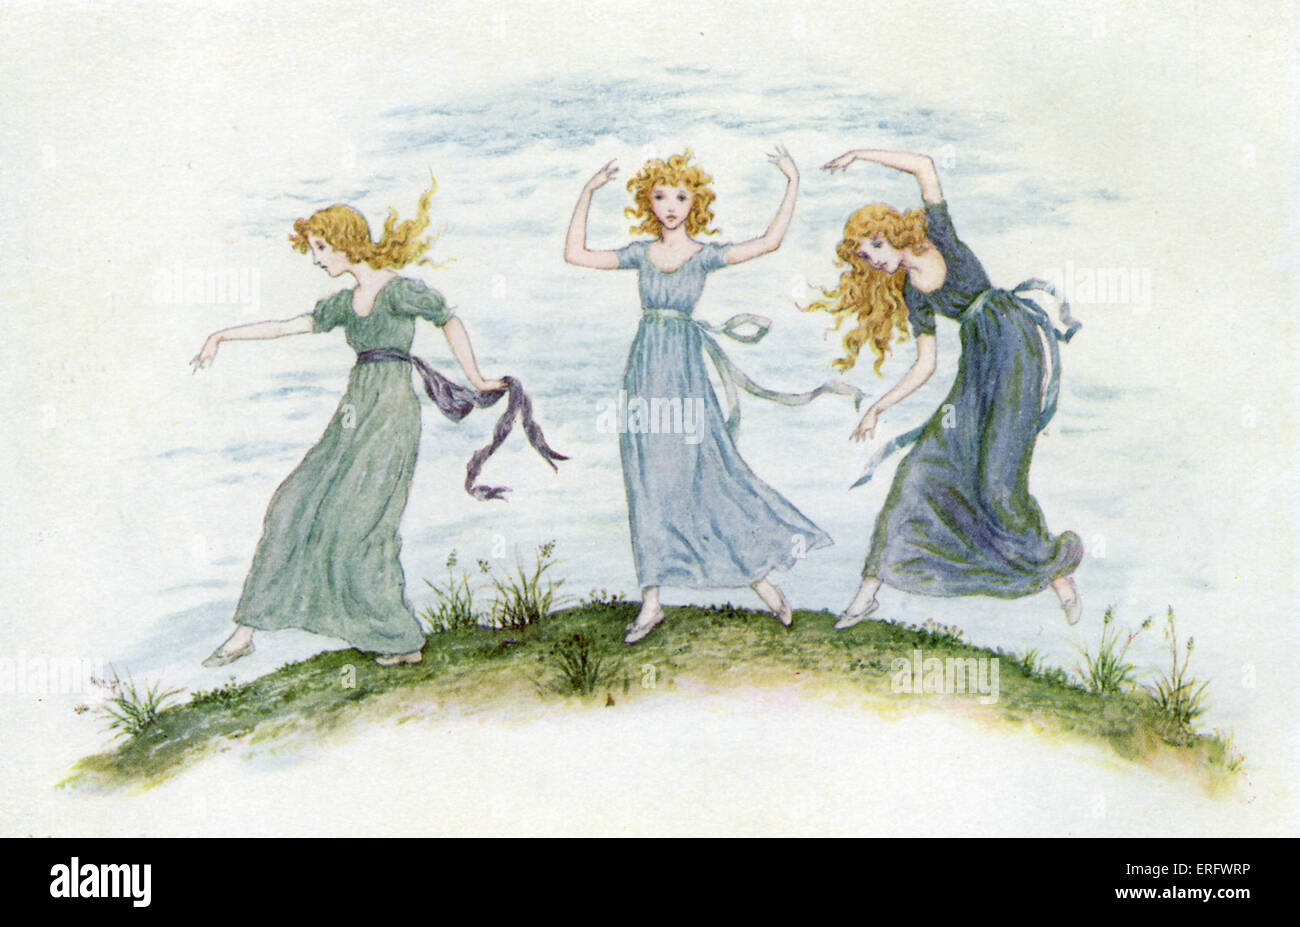 'The dancing of the felspar fairies'  by Kate Greenaway. Water-colour painting. - Stock Image